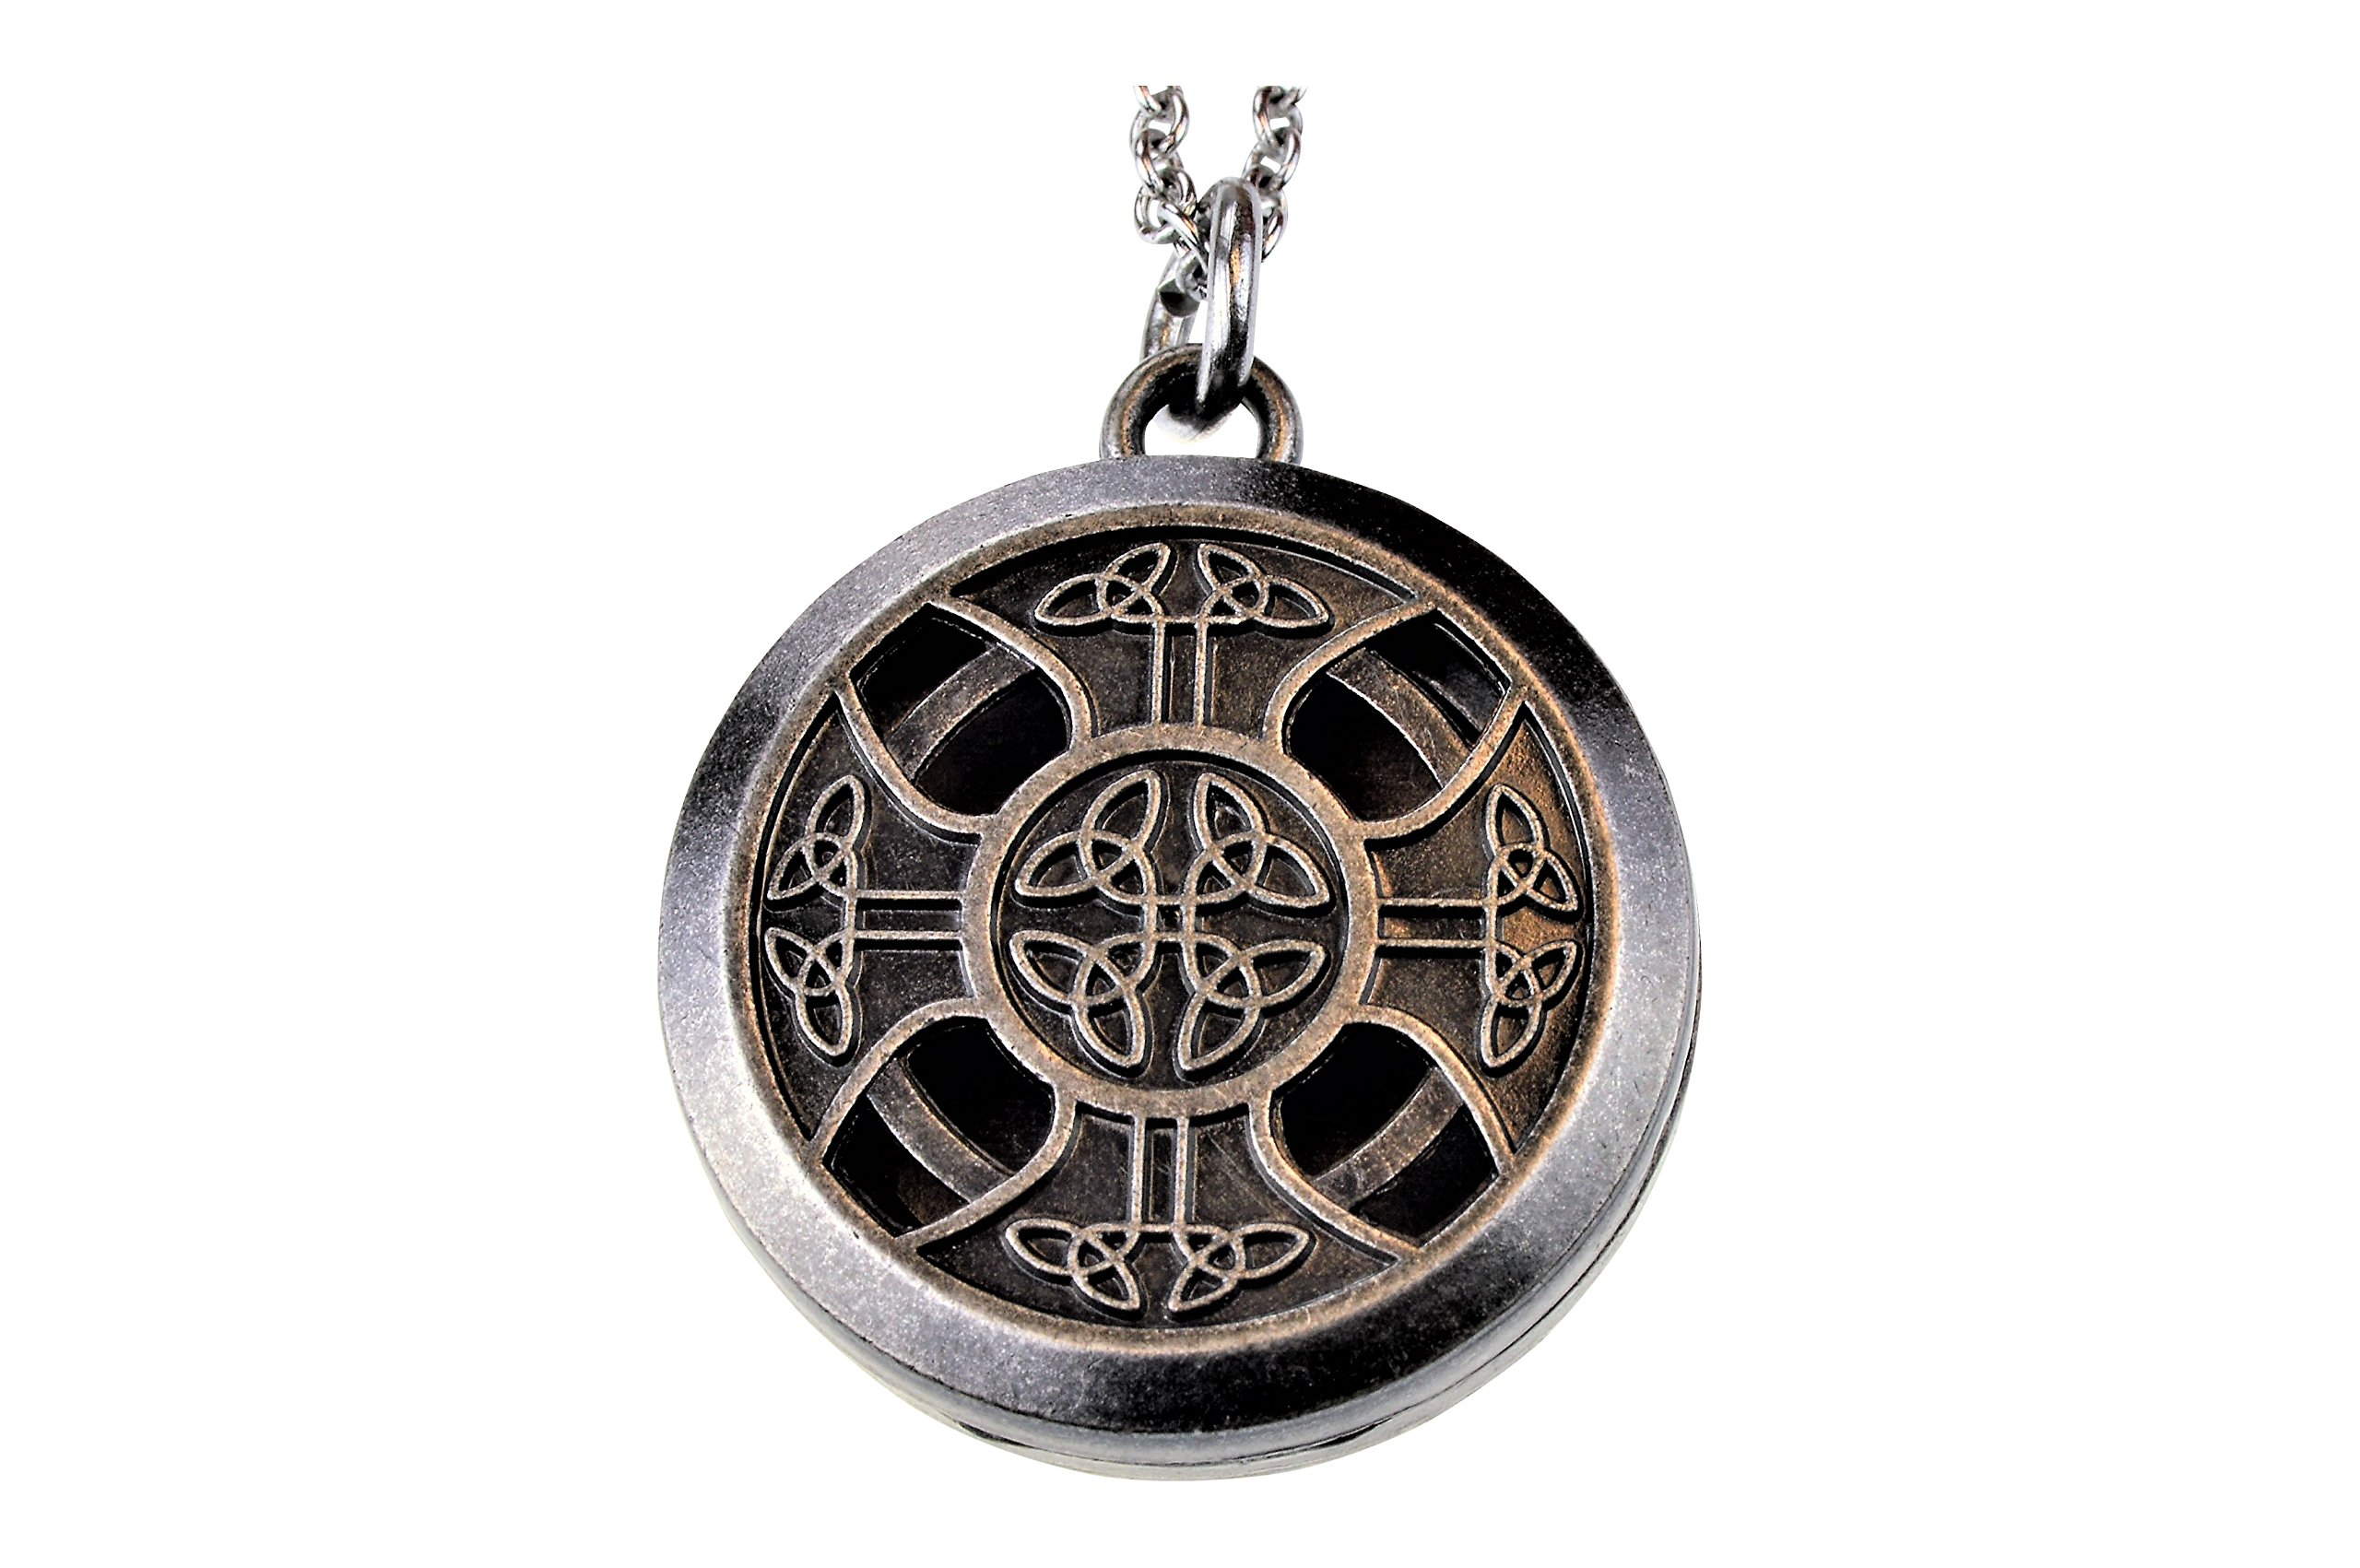 aromatherapy necklace cross aroma aum com stainless celtic locket diffuser oil jewelry essential amazon dp pendant pewter om